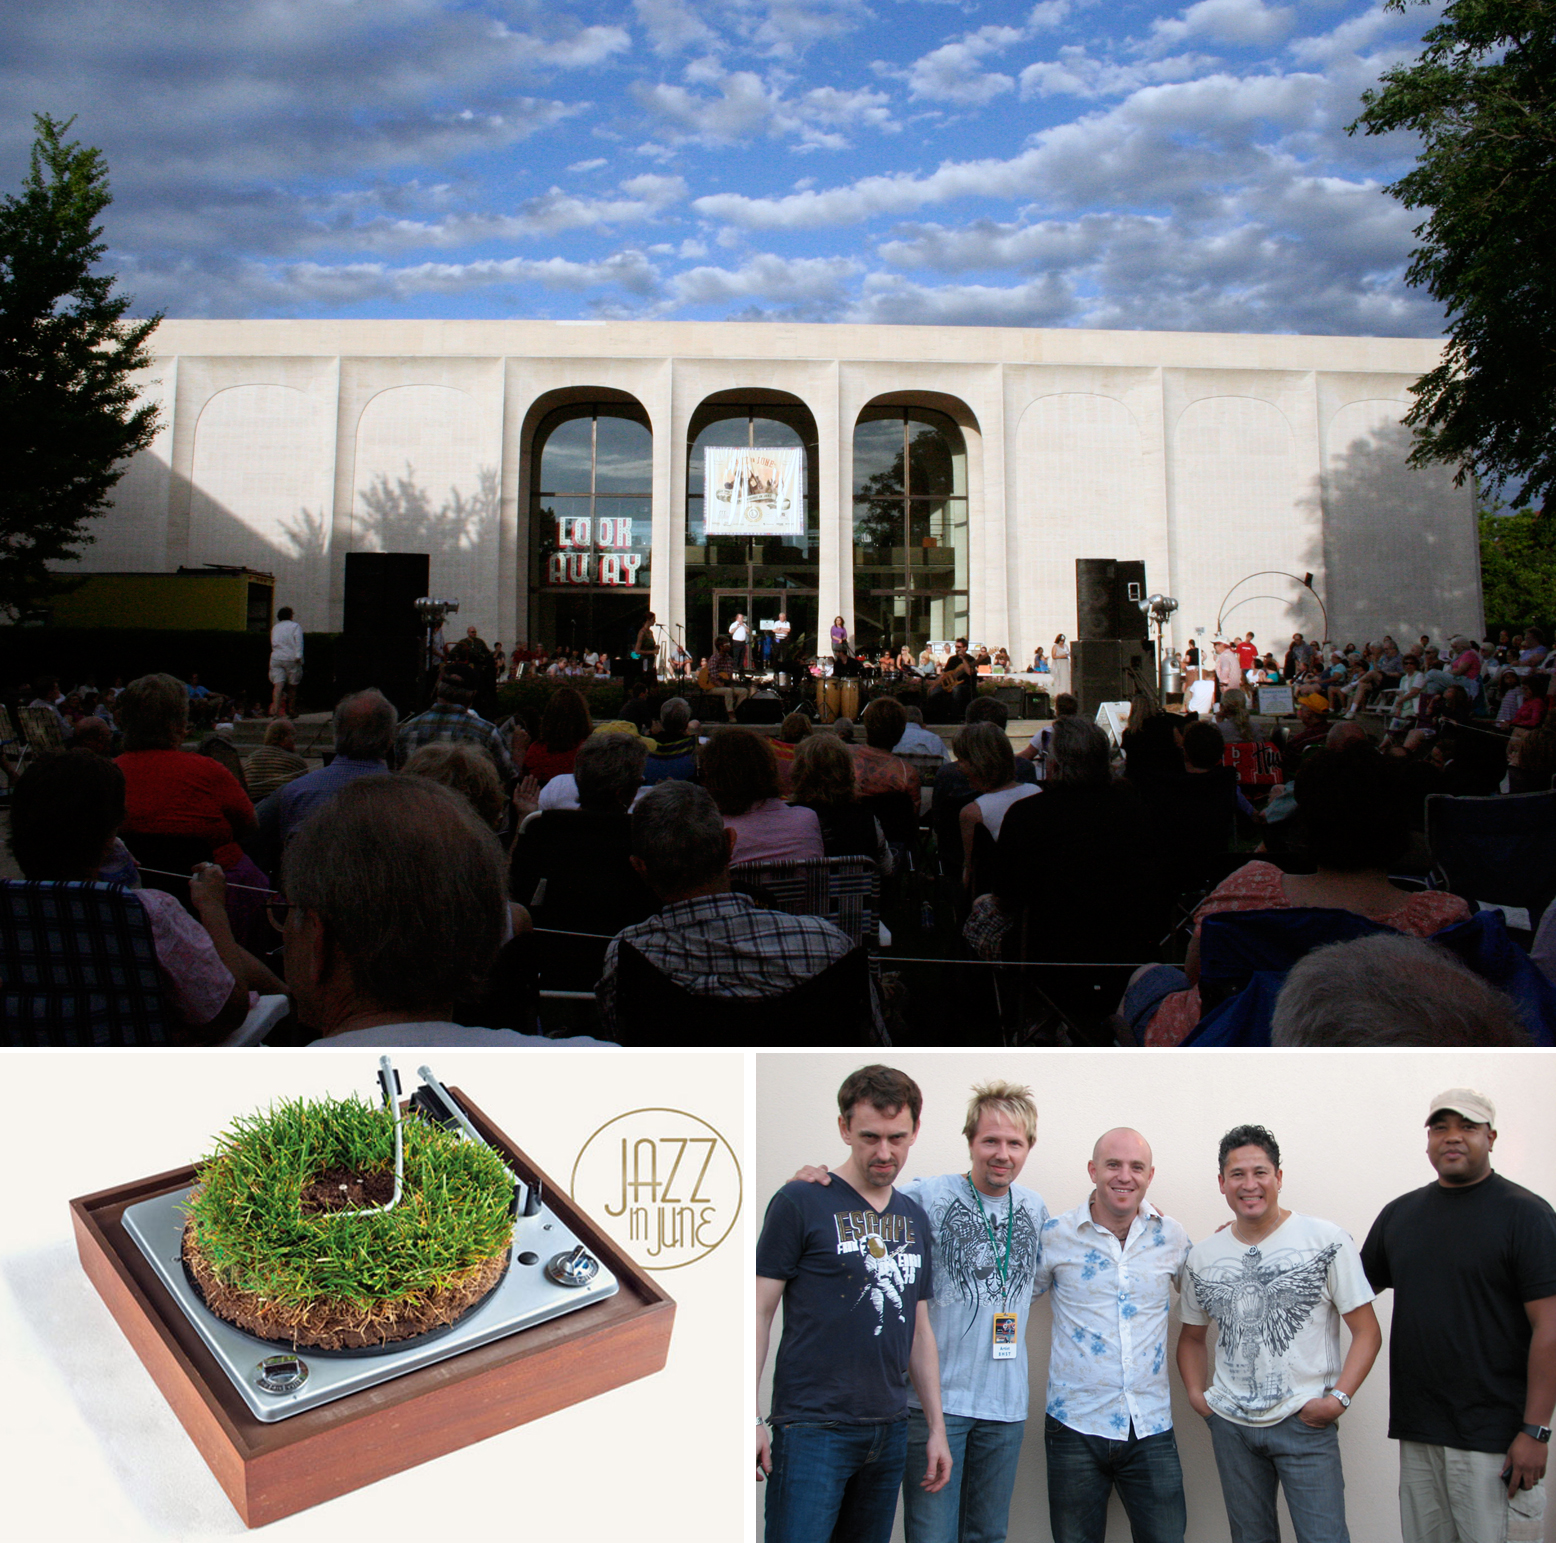 The group TIZER (lower right) opens the annual Jazz in June schedule at the Sheldon Museum of Art (top) today.